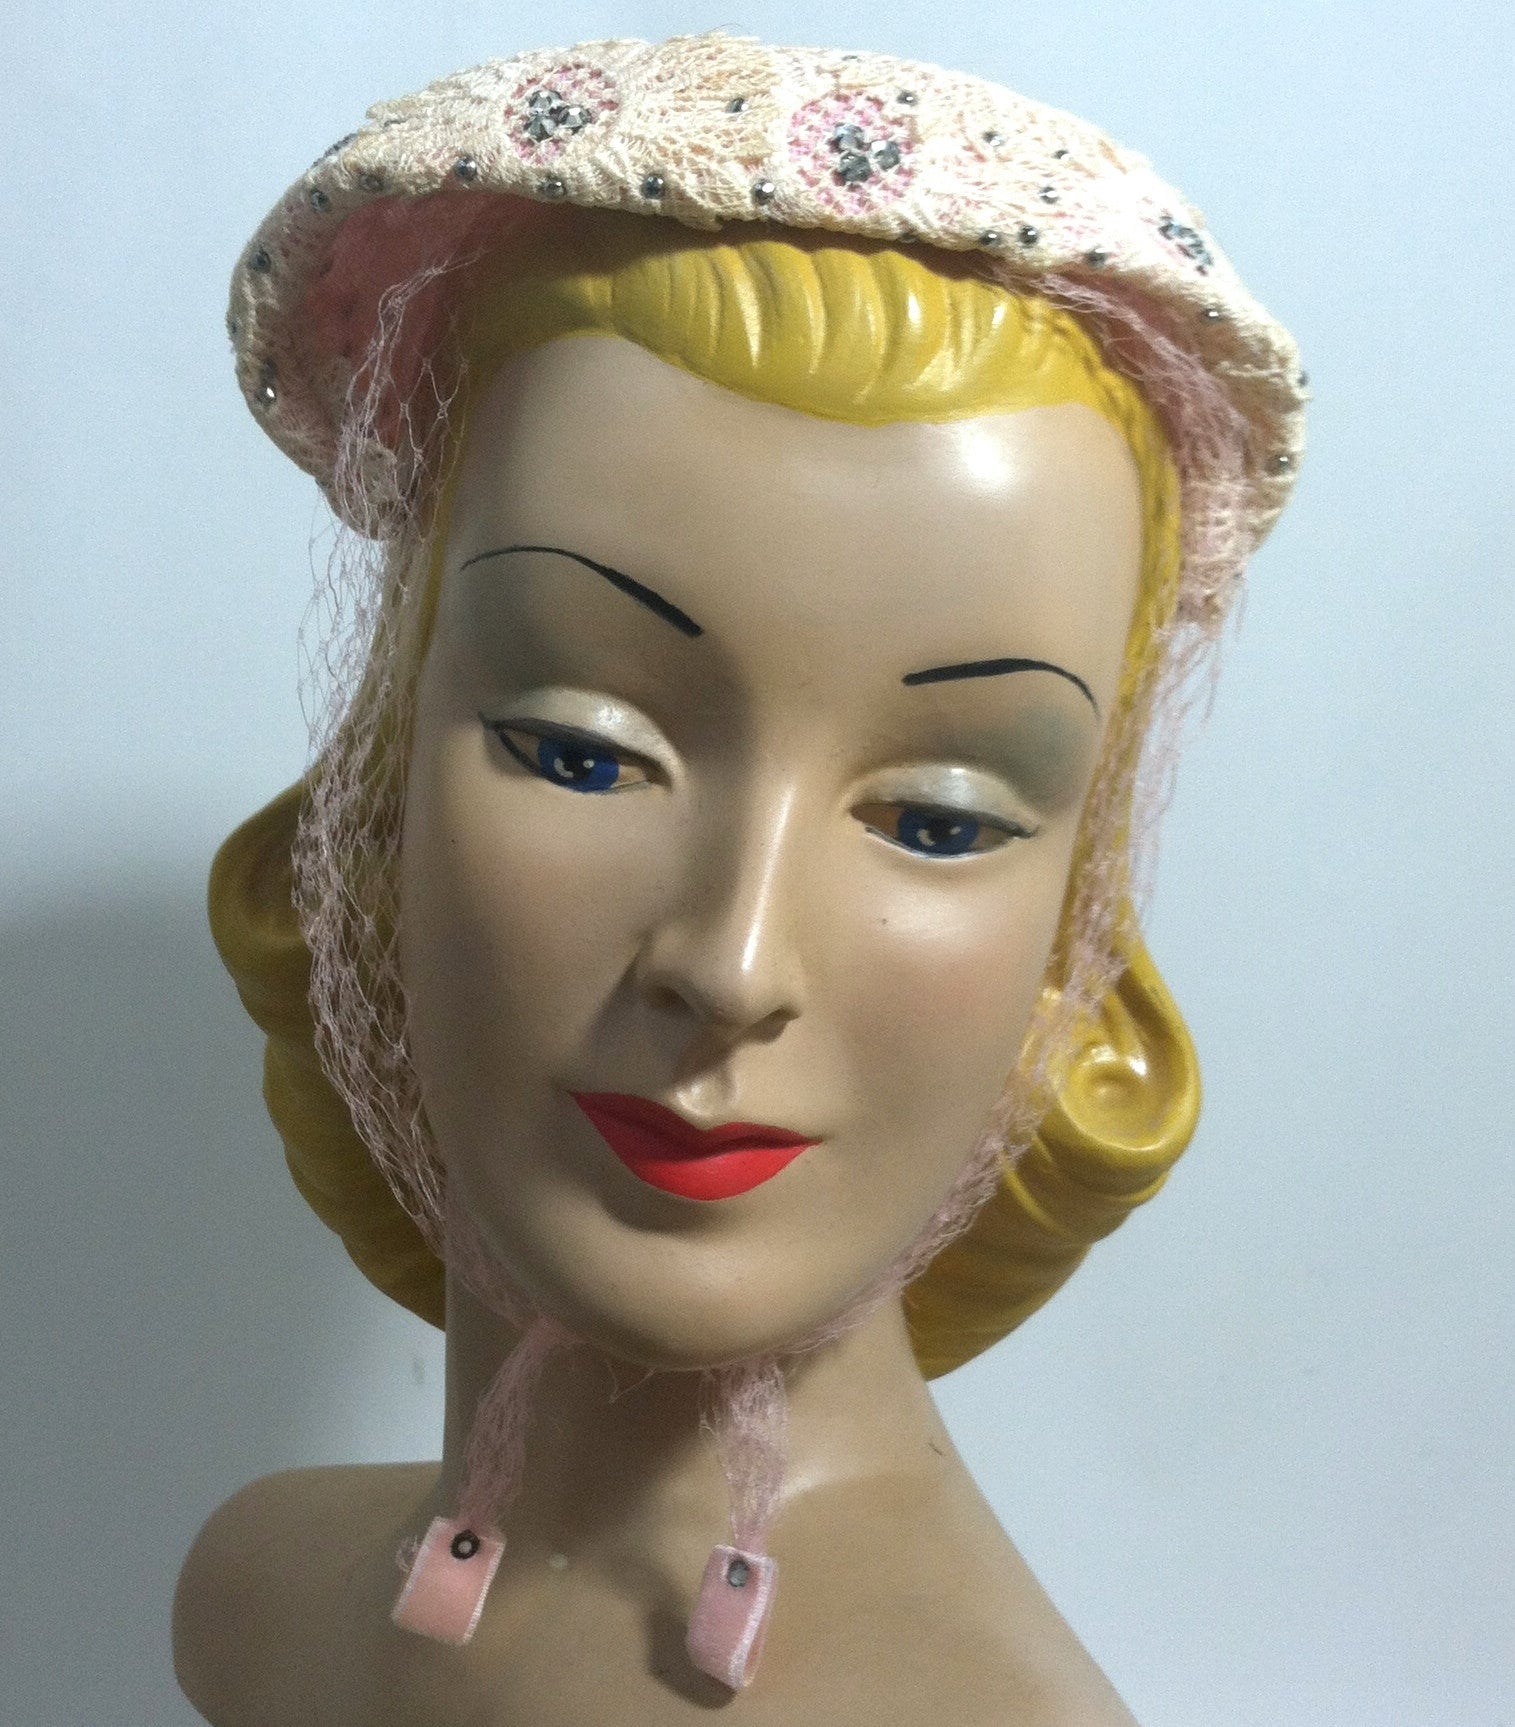 Pink Lace Rhinestone Trimmed Hat w/ Veil circa 1950s Dorothea's Closet Vintage Hat